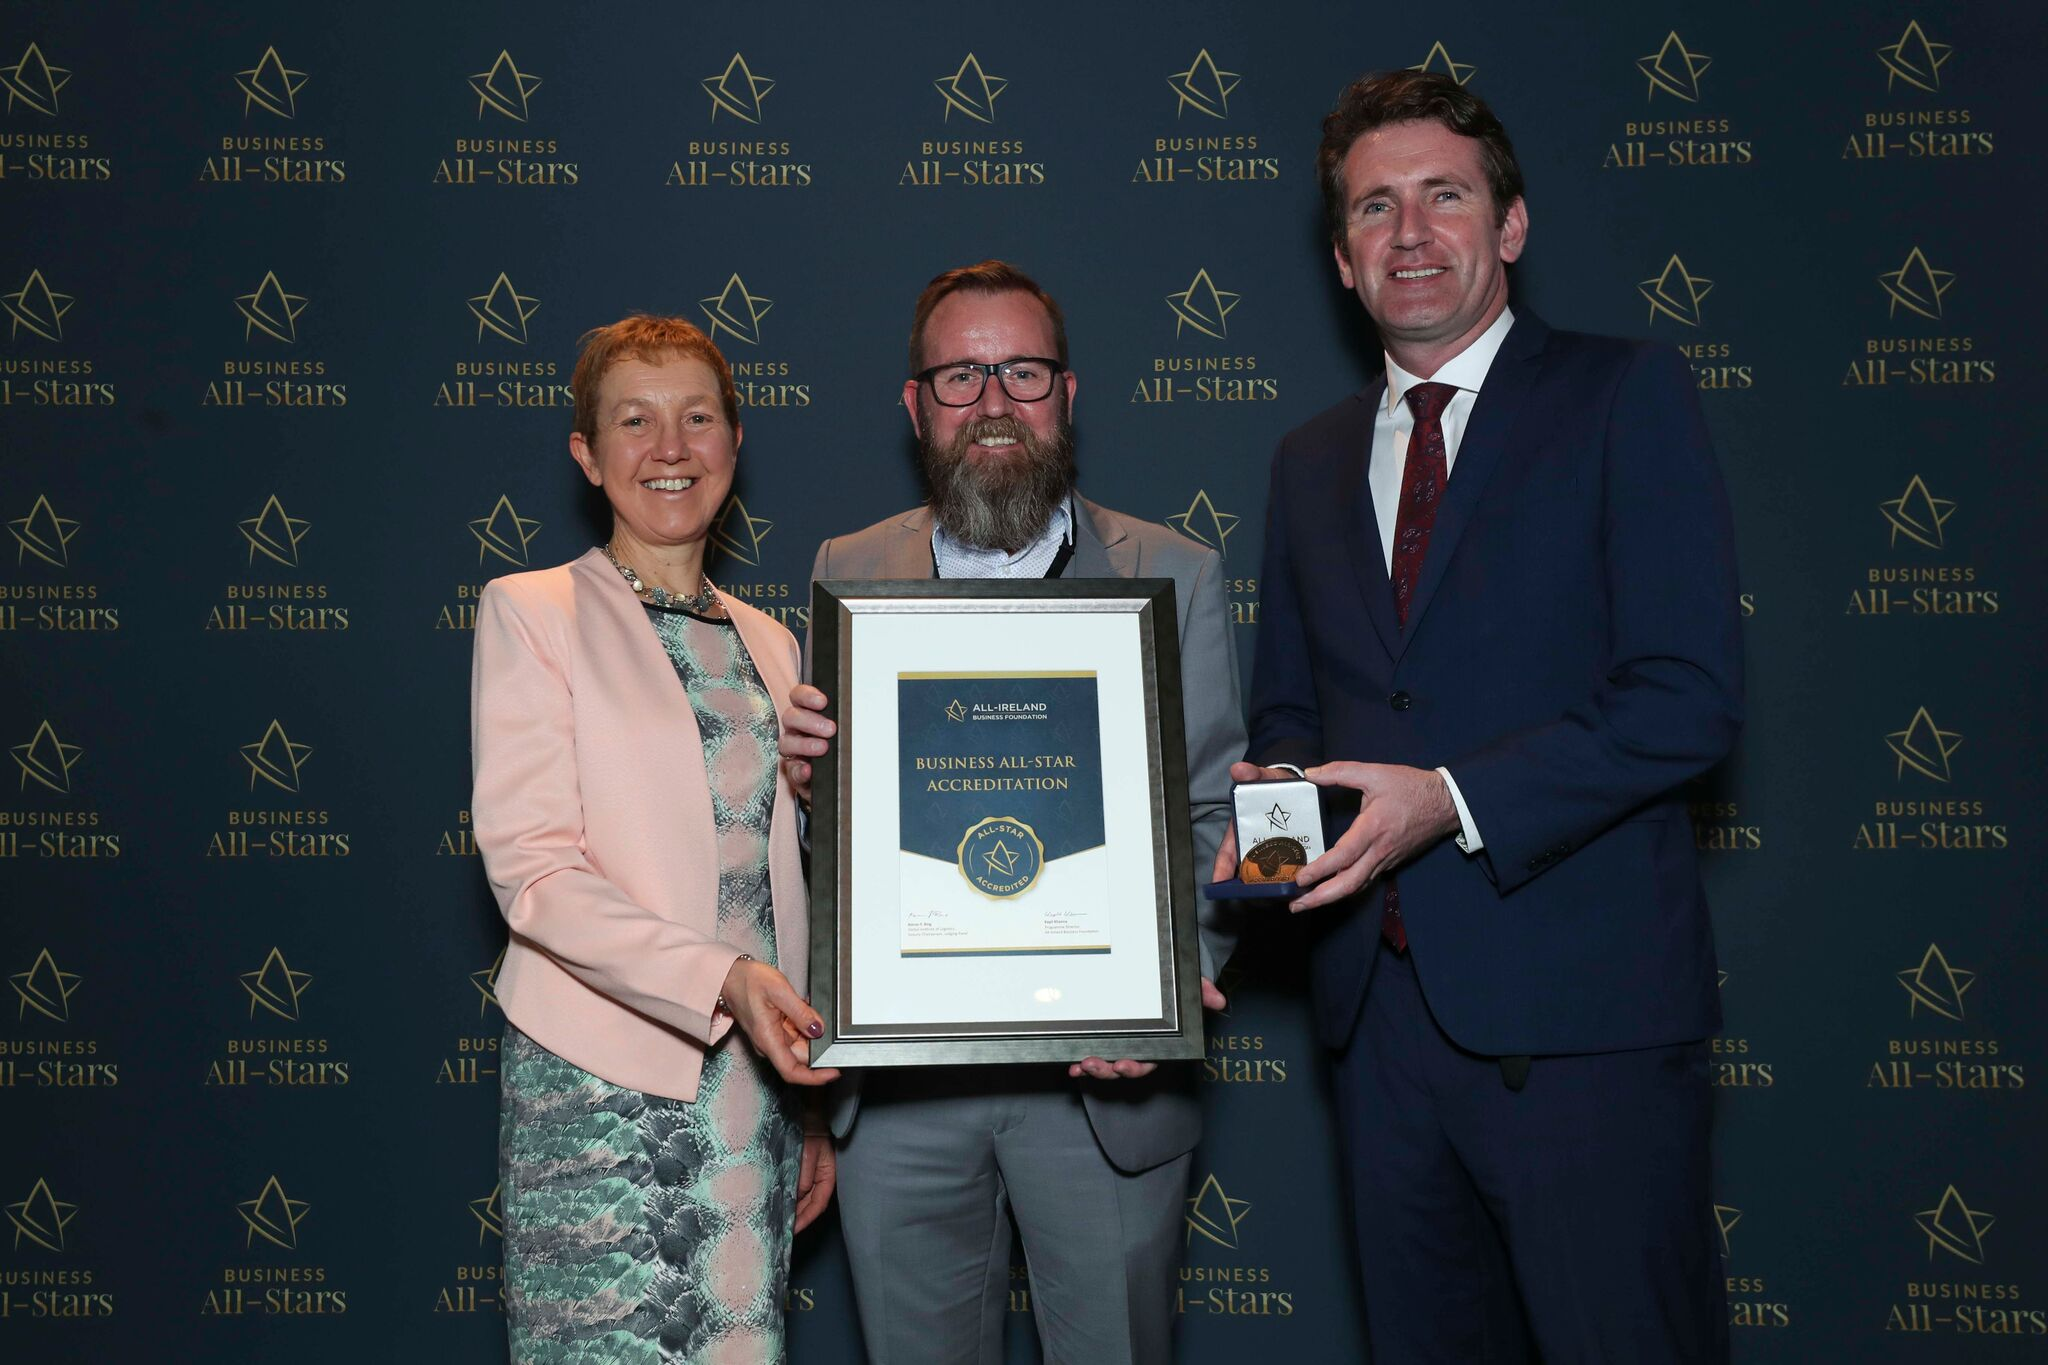 Ciaran Clarke - Roches Barbershop & Shaving Saloon receiving Business All-Star Accreditation at Croke Park from Dr Briga Hynes, Kemmy Business School, University of Limerick and Senator Aodhán Ó Ríordáin, Spokesperson on Education and Skills, Gaeilge and the Gaeltacht.